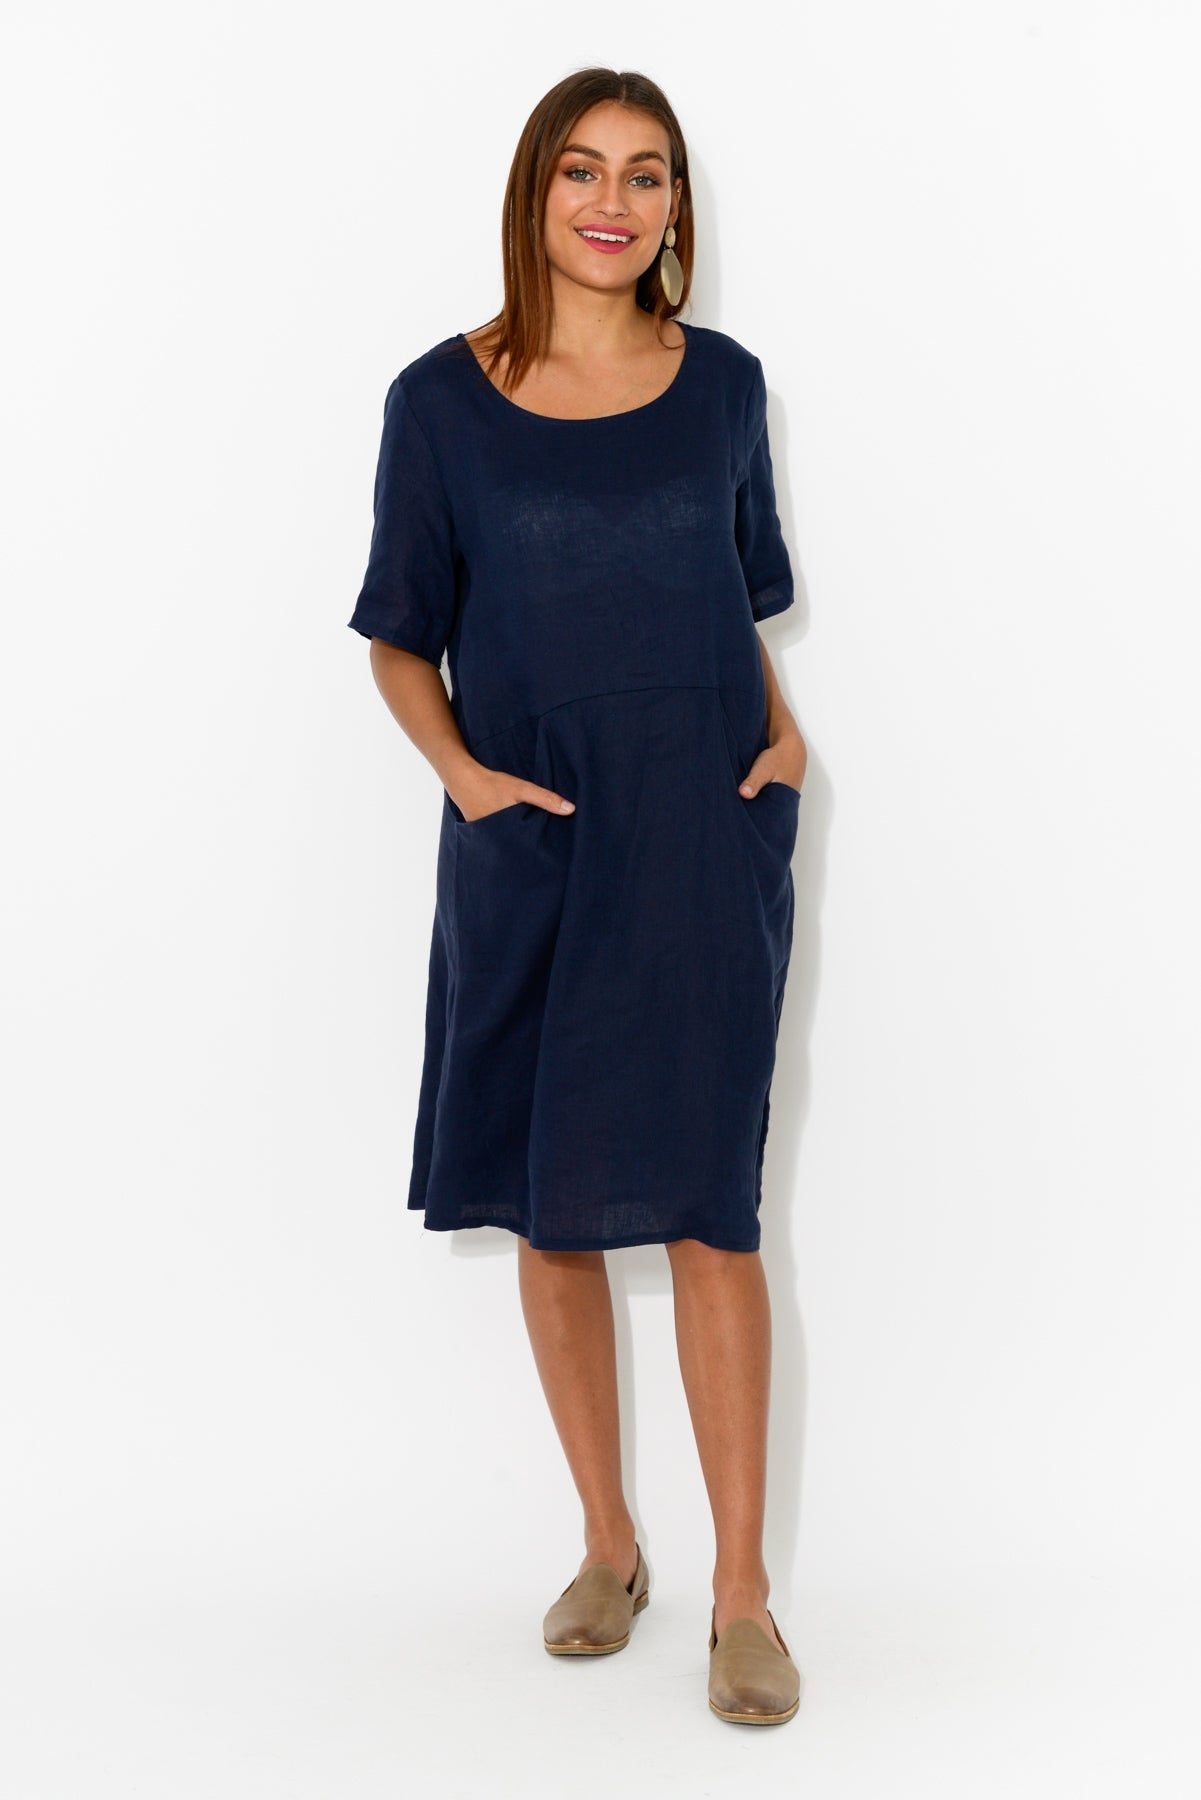 Dora Navy Linen Pocket Dress - Cali and Co - Blue Bungalow Online